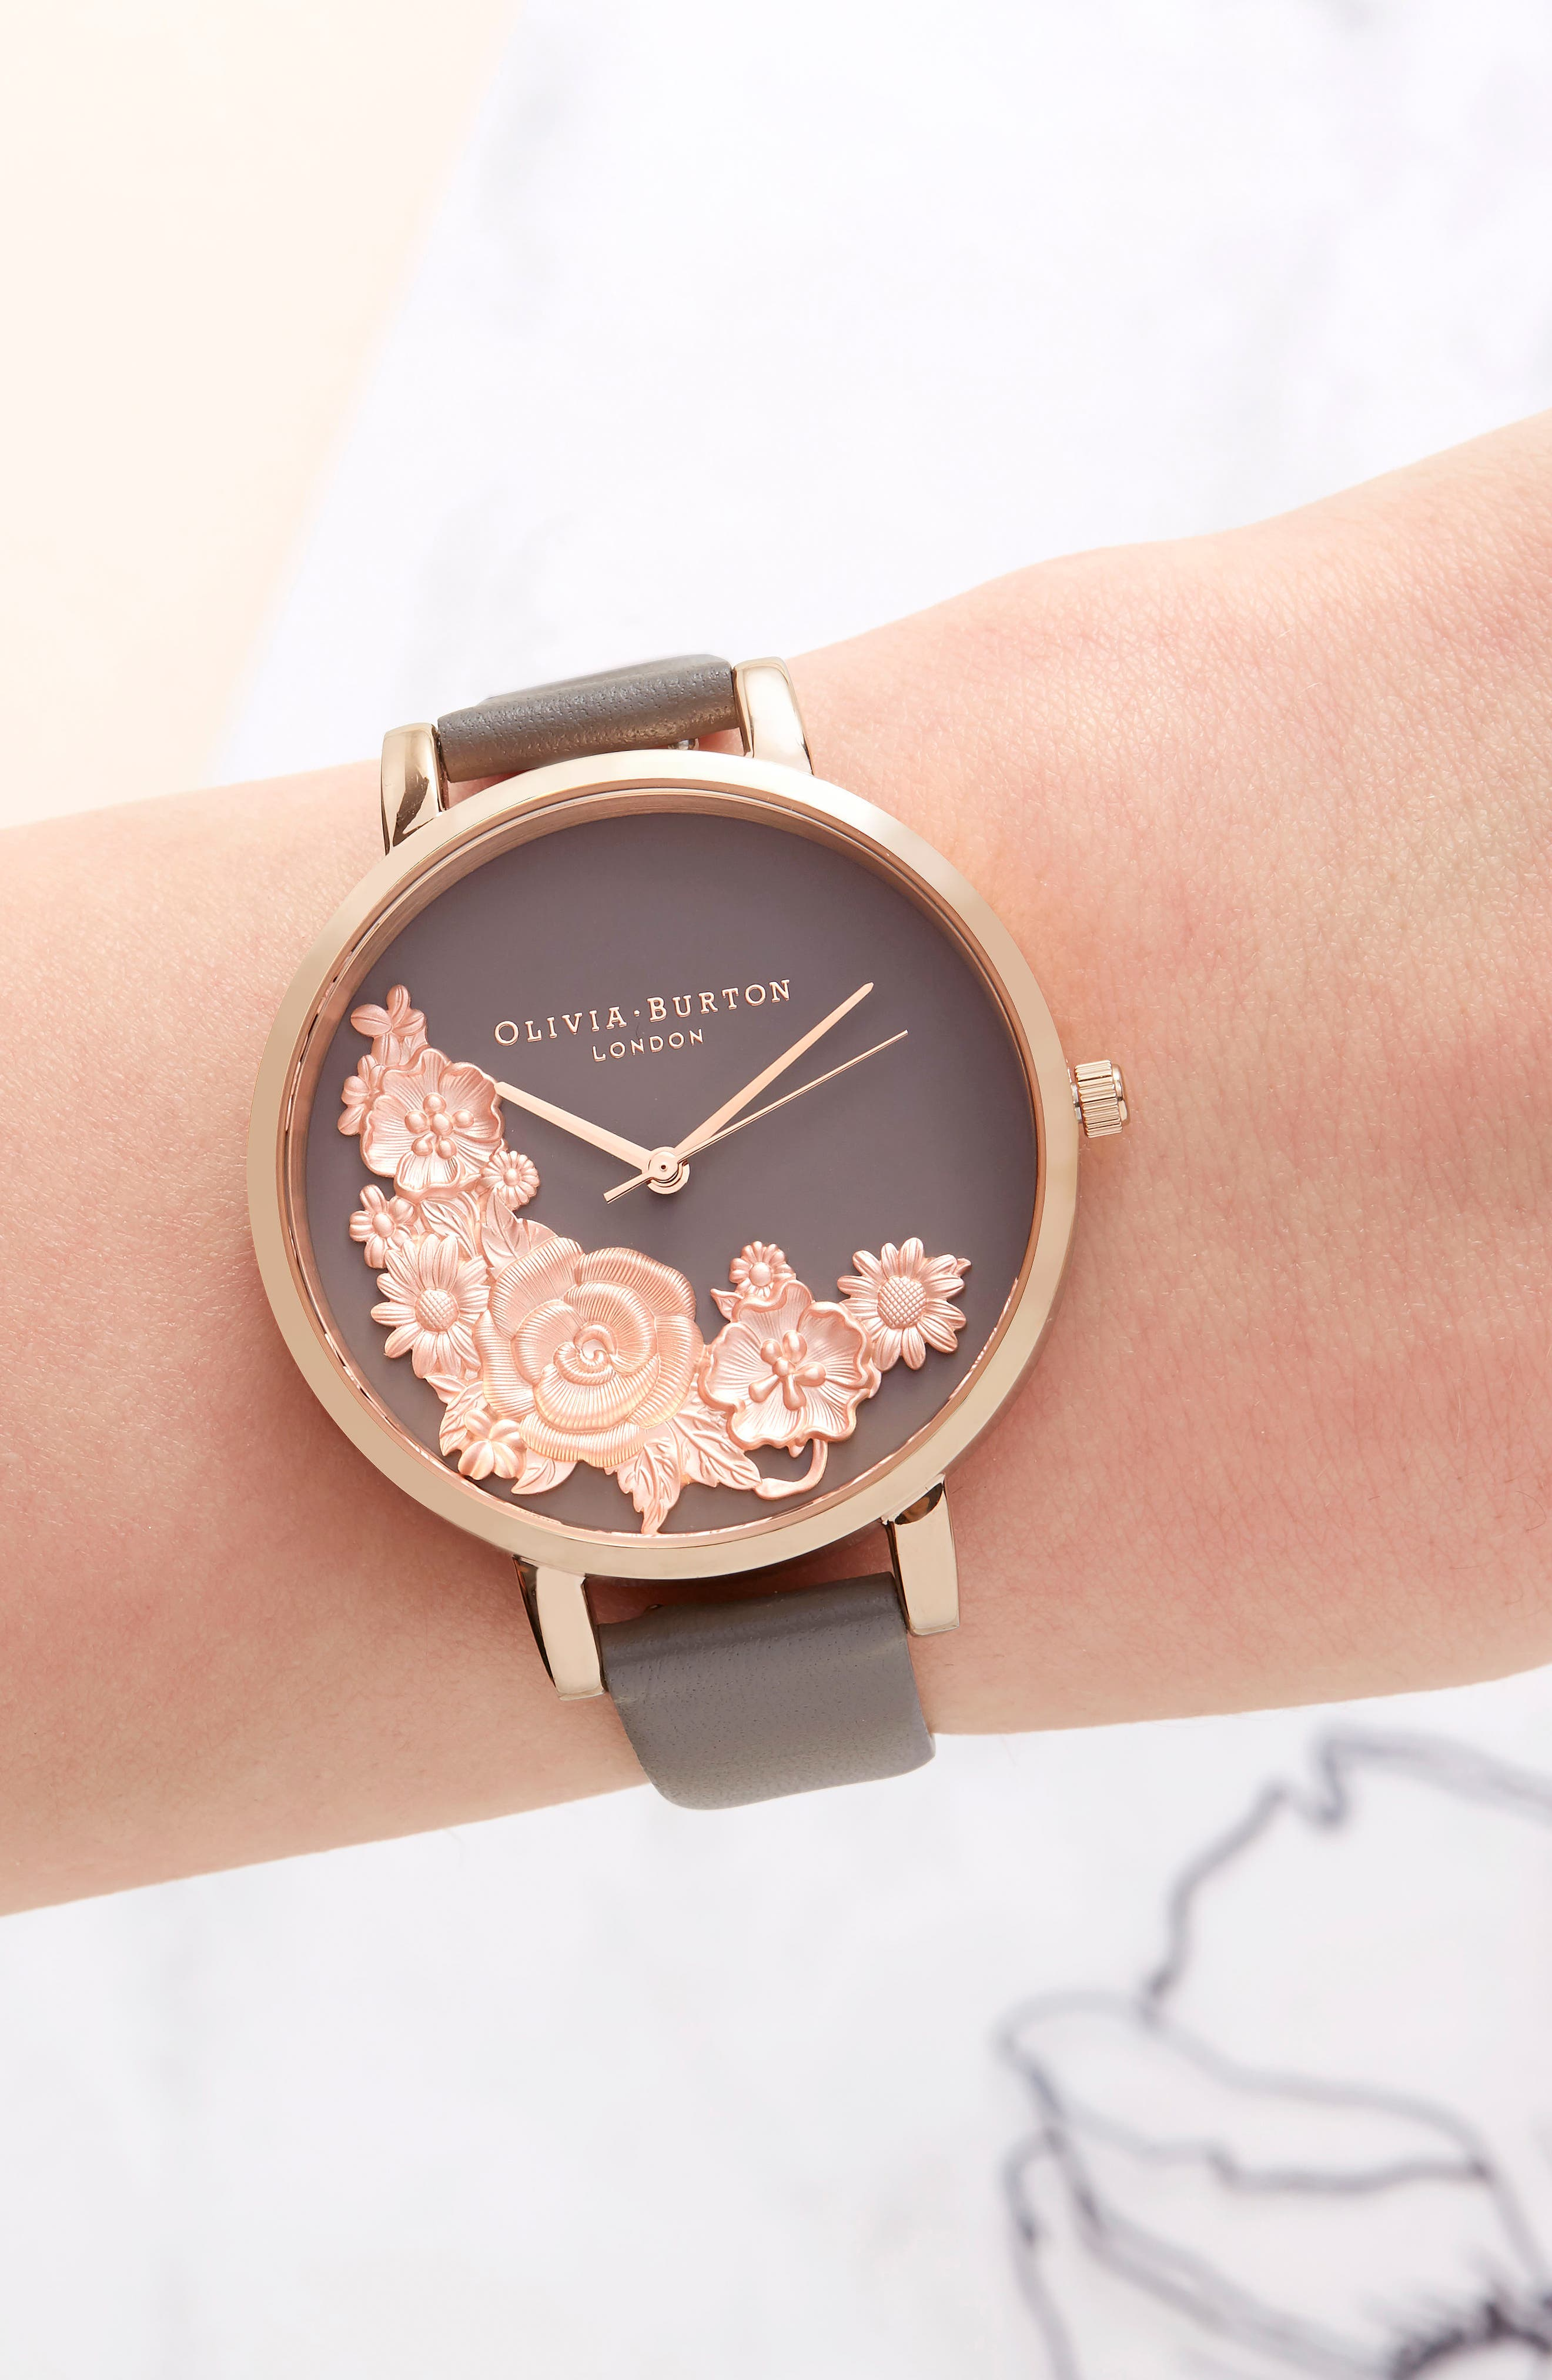 Floral Bouquet Leather Strap Watch, 38mm,                             Alternate thumbnail 6, color,                             LONDON GREY/ GREY/ ROSE GOLD